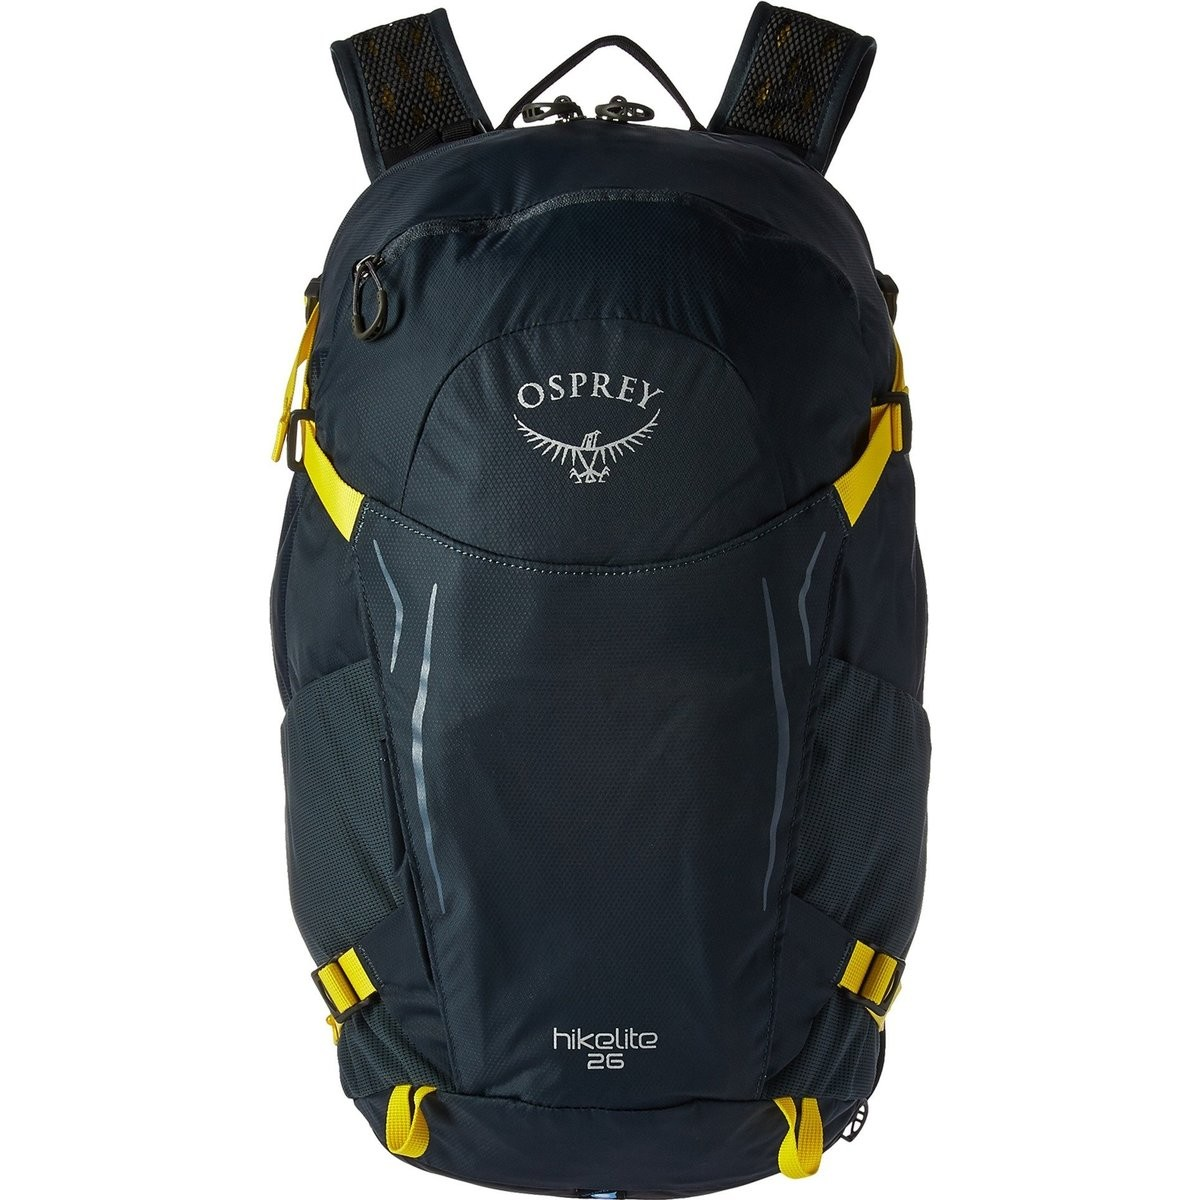 Osprey HIKELITE BACKPACK – 26 L  SHIITAKE GREY